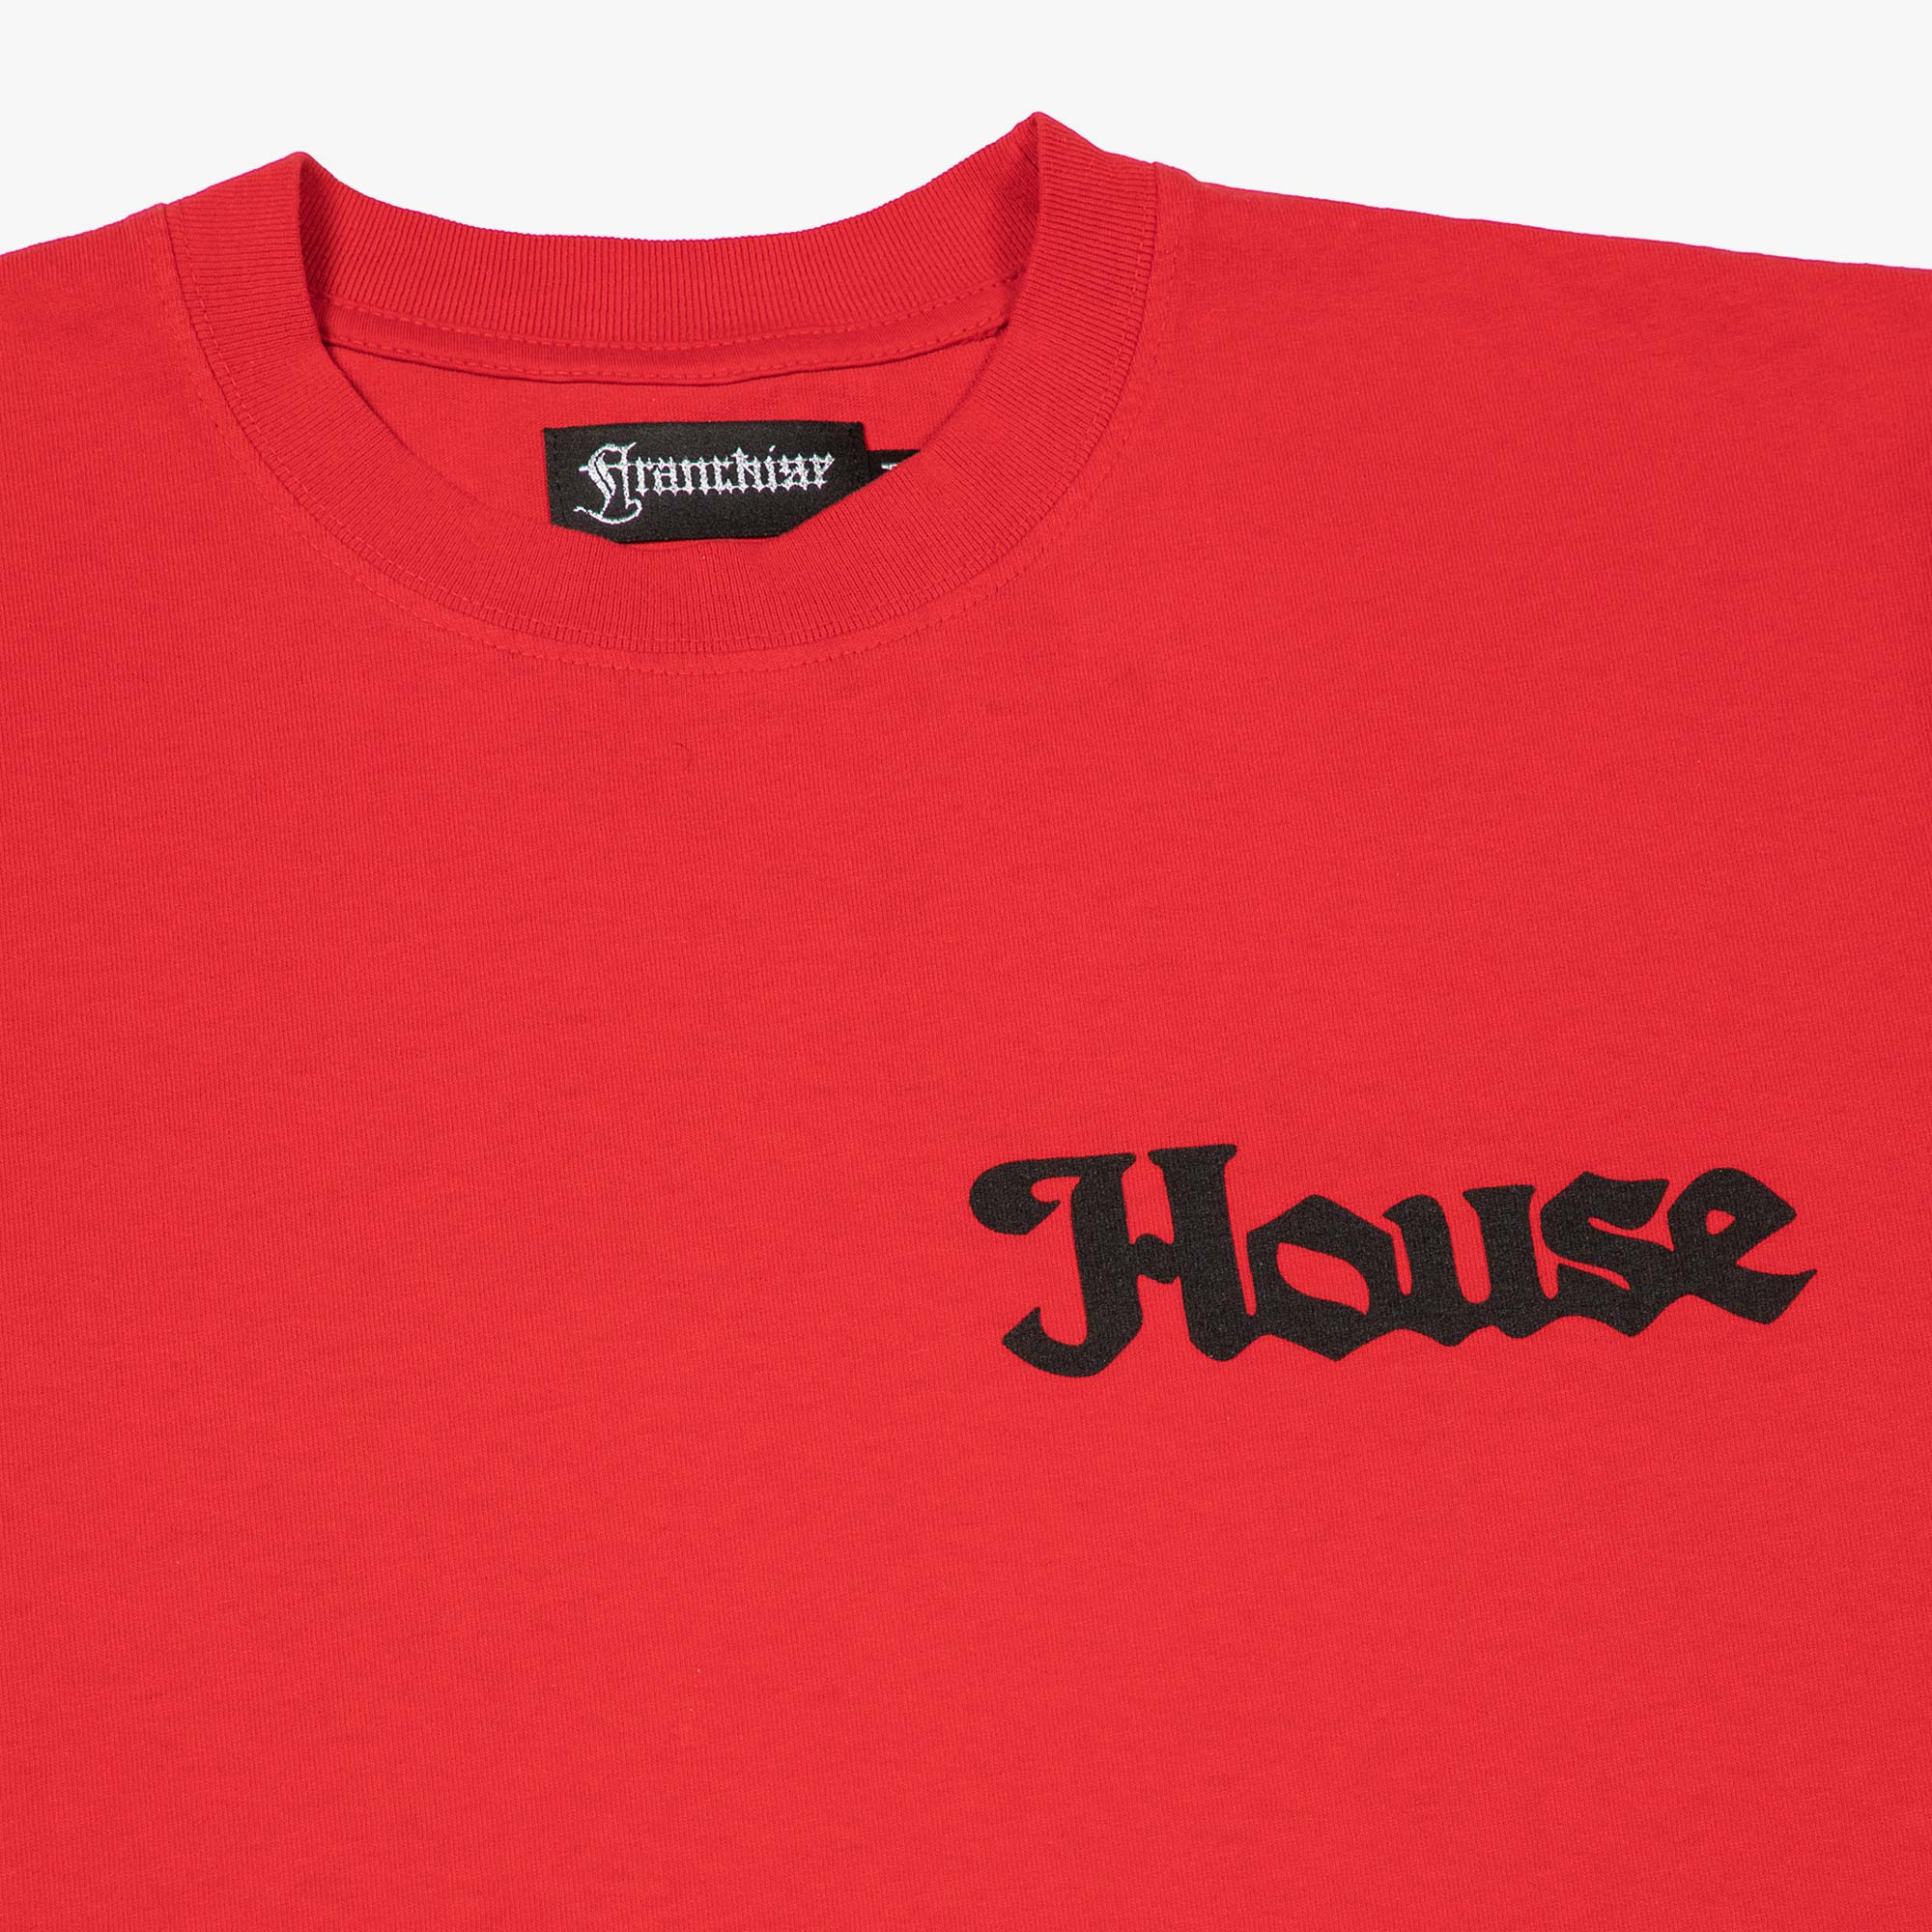 Franchise In The Beginning SS Tee - Washed Red 4